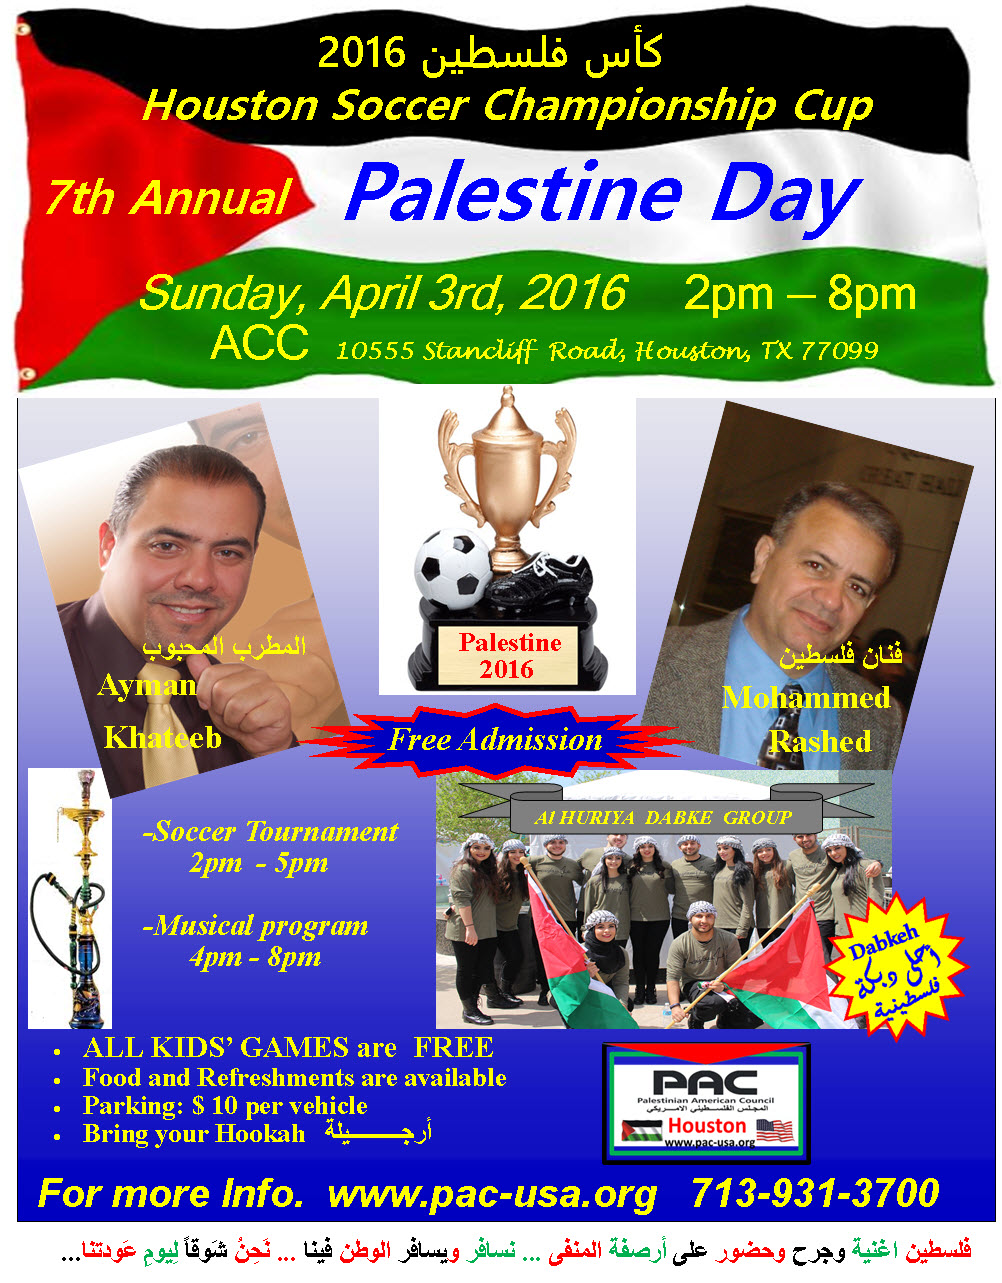 arab voices radio talk show community calendar click here for event flyer